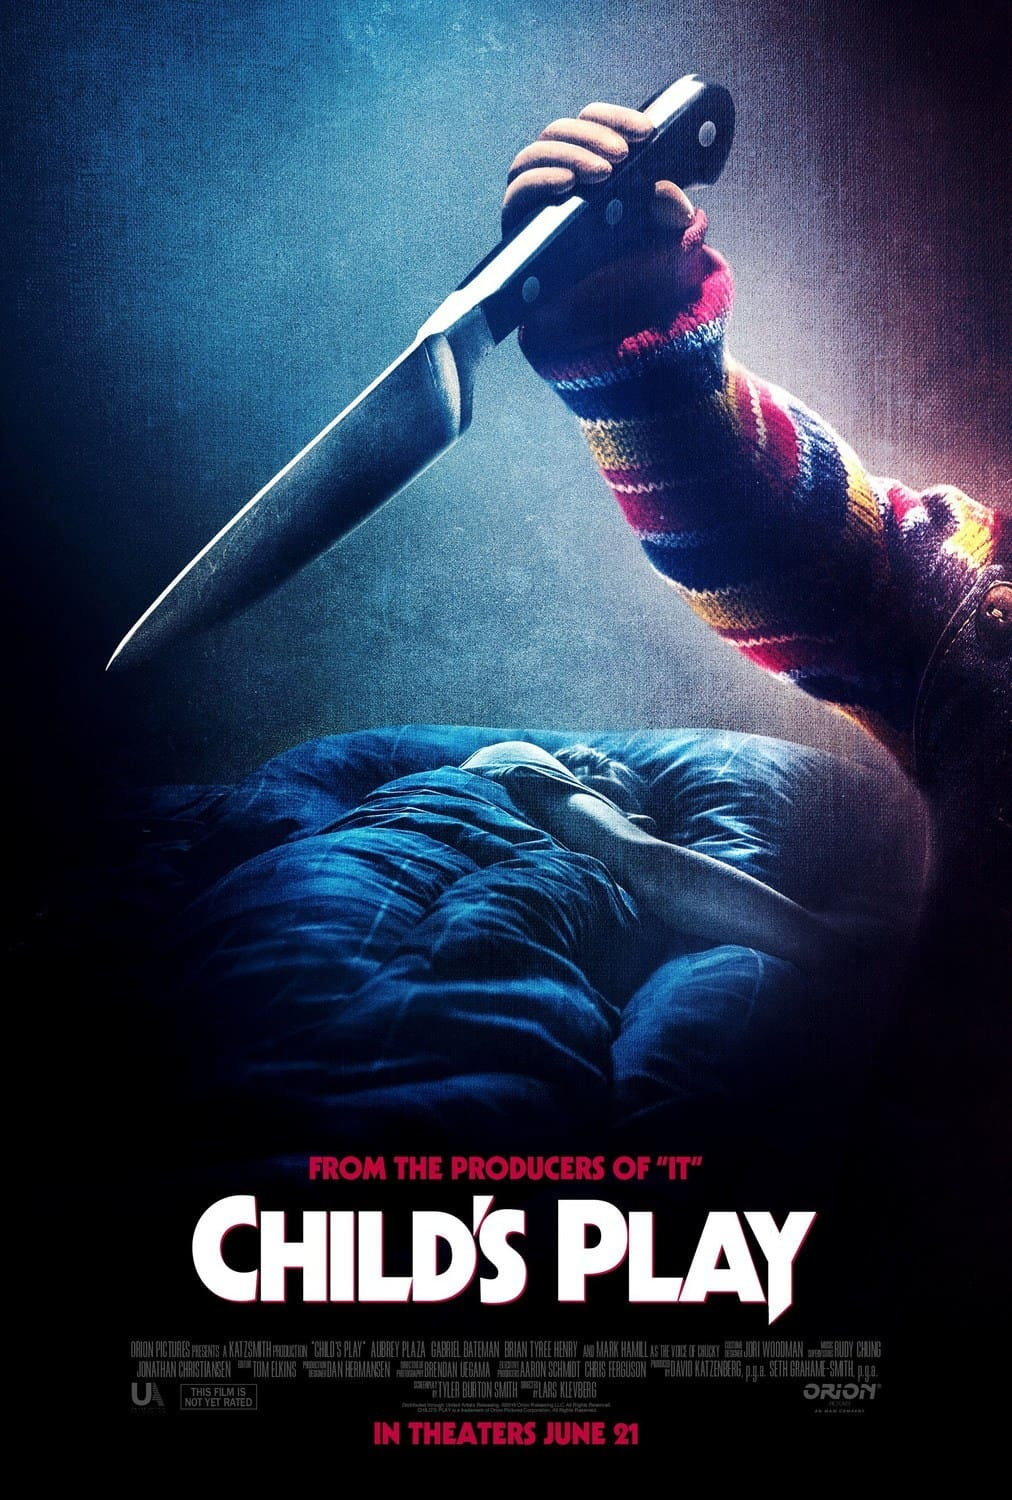 CHILDS PLAY poster - New CHILD'S PLAY Poster Today, New Trailer Tomorrow